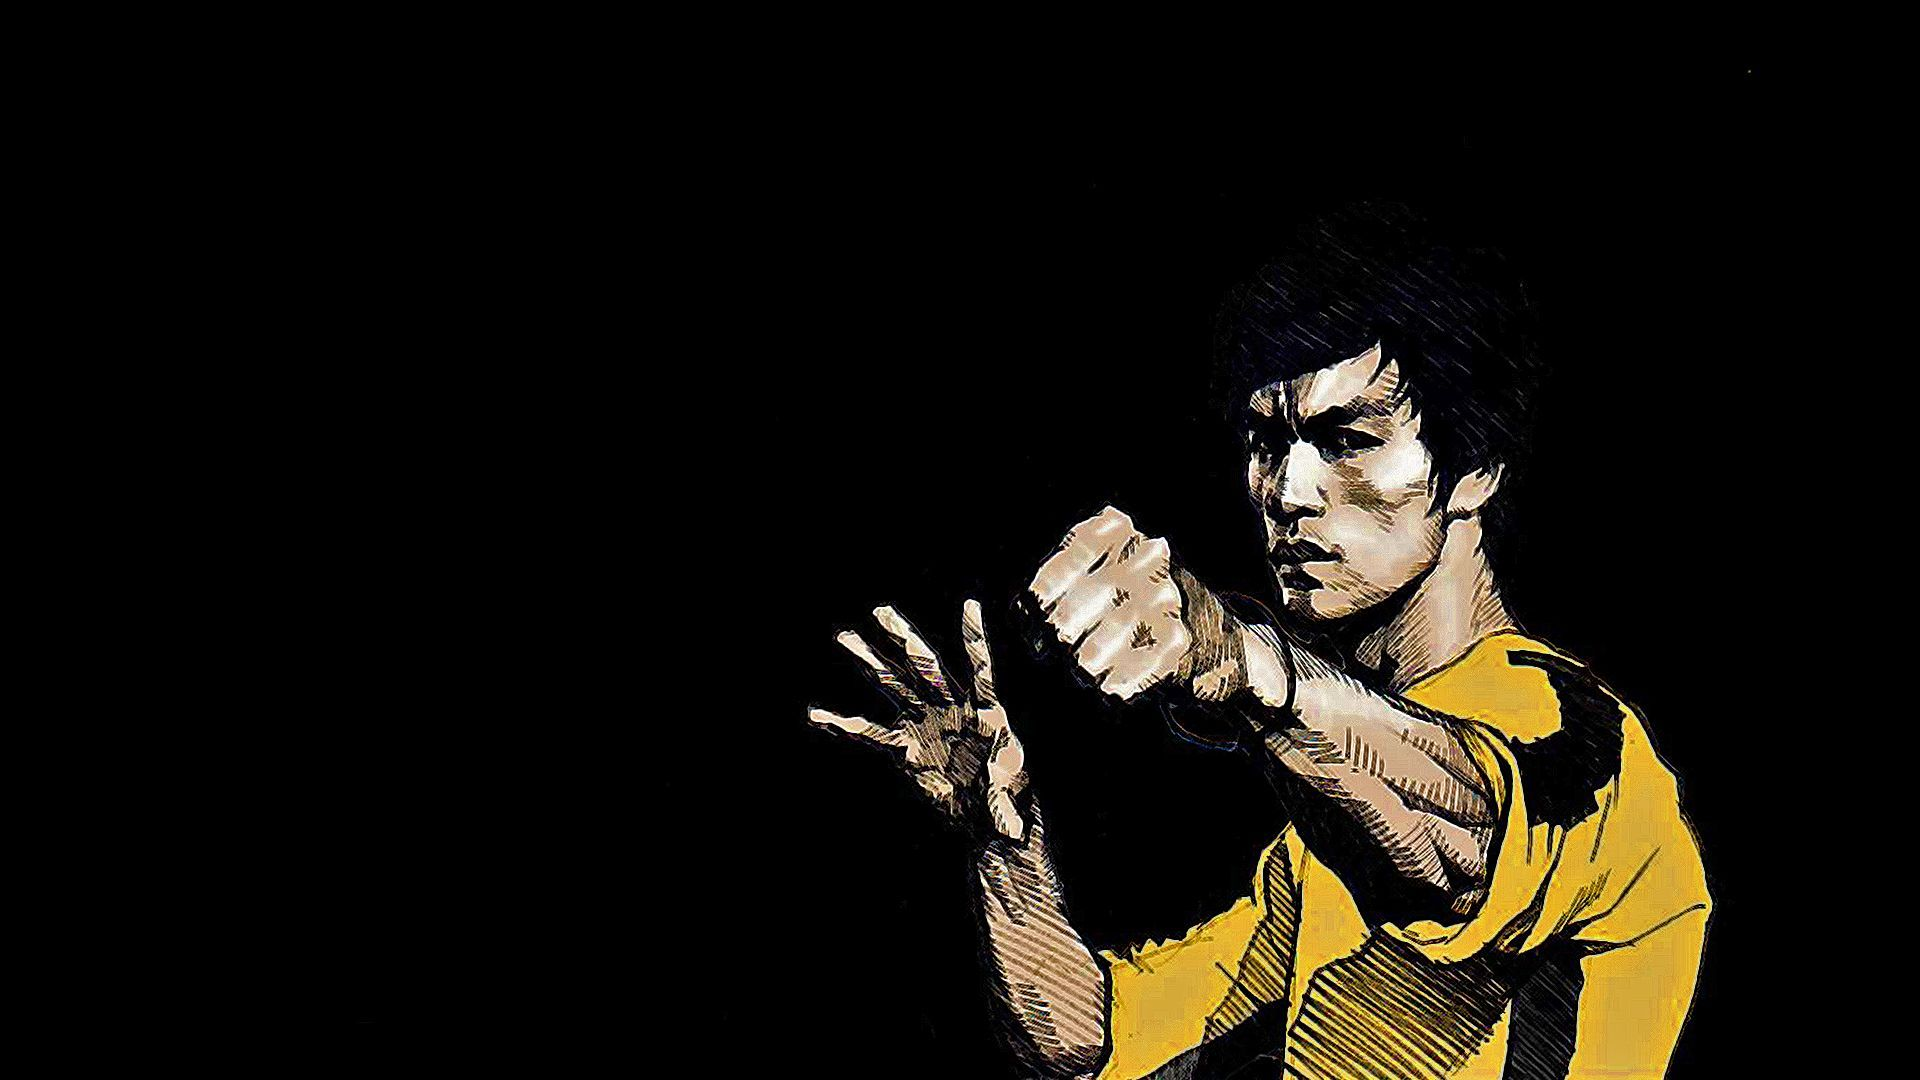 Bruce Lee Wallpapers HD A14